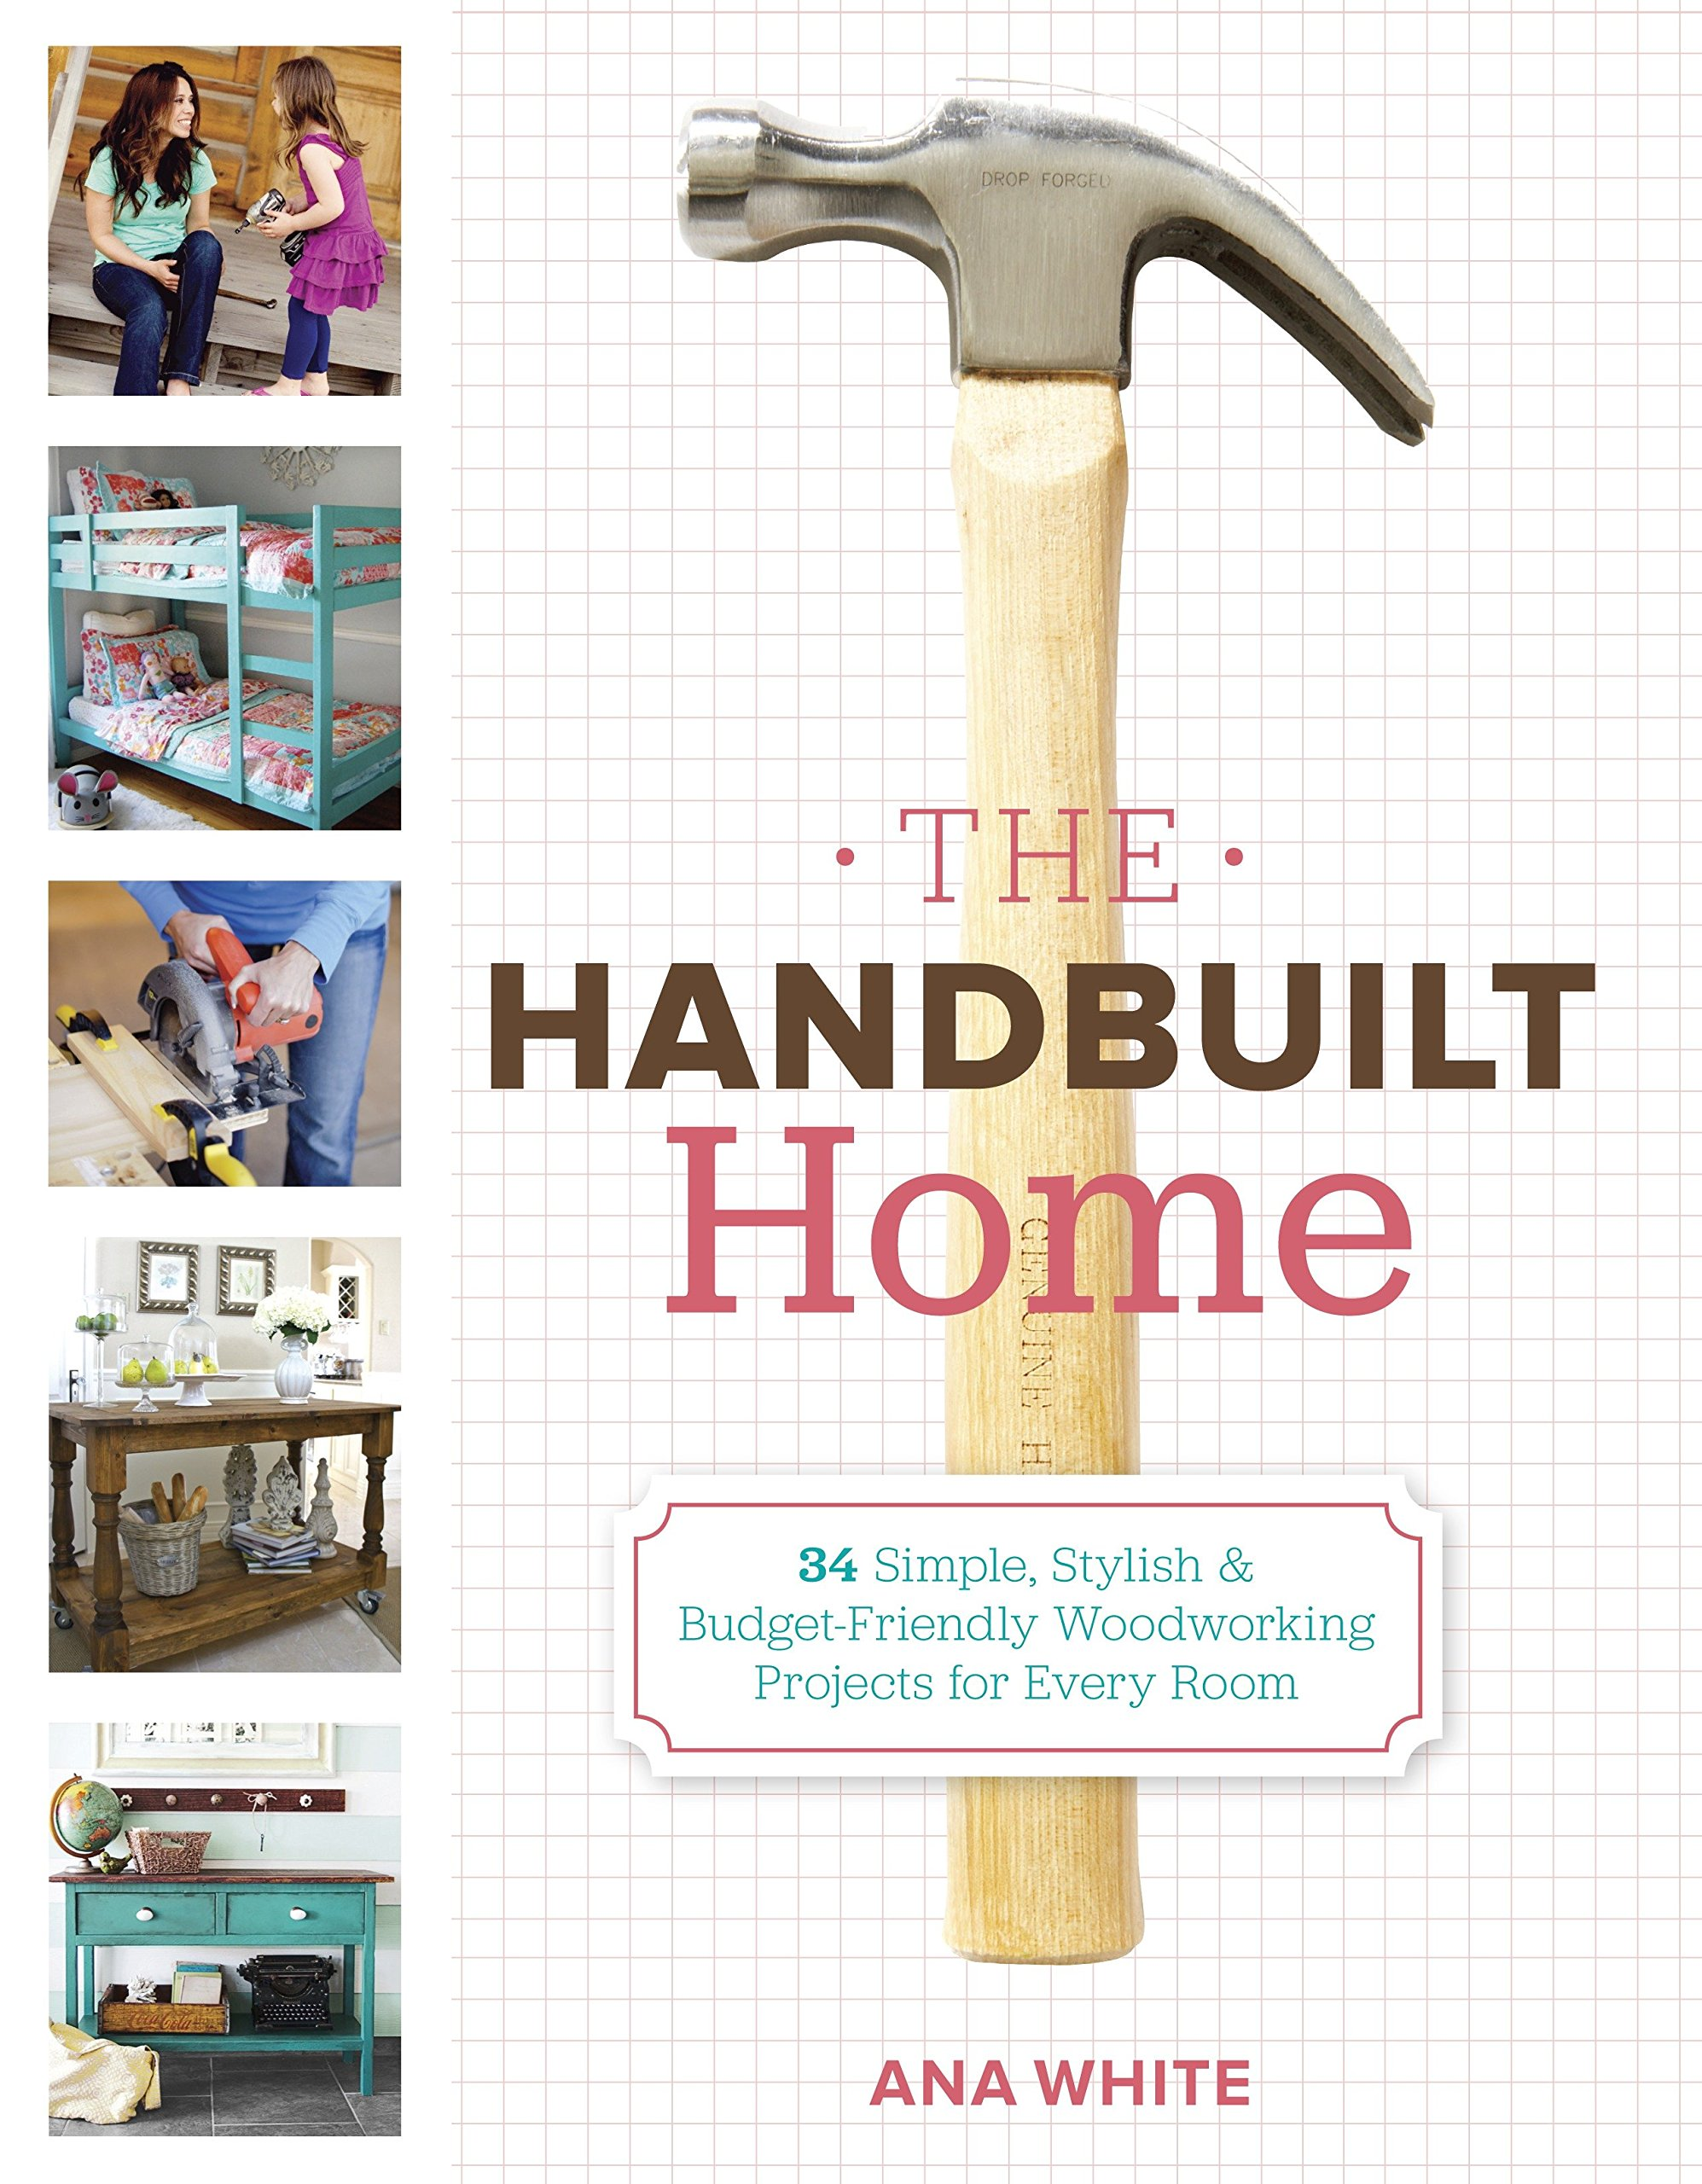 The Handbuilt Home 34 Simple Stylish And Budget Friendly Found On Easydoityourselfhomeimprovementscom Woodworking Projects For Every Room Ana White 9780307587329 Books